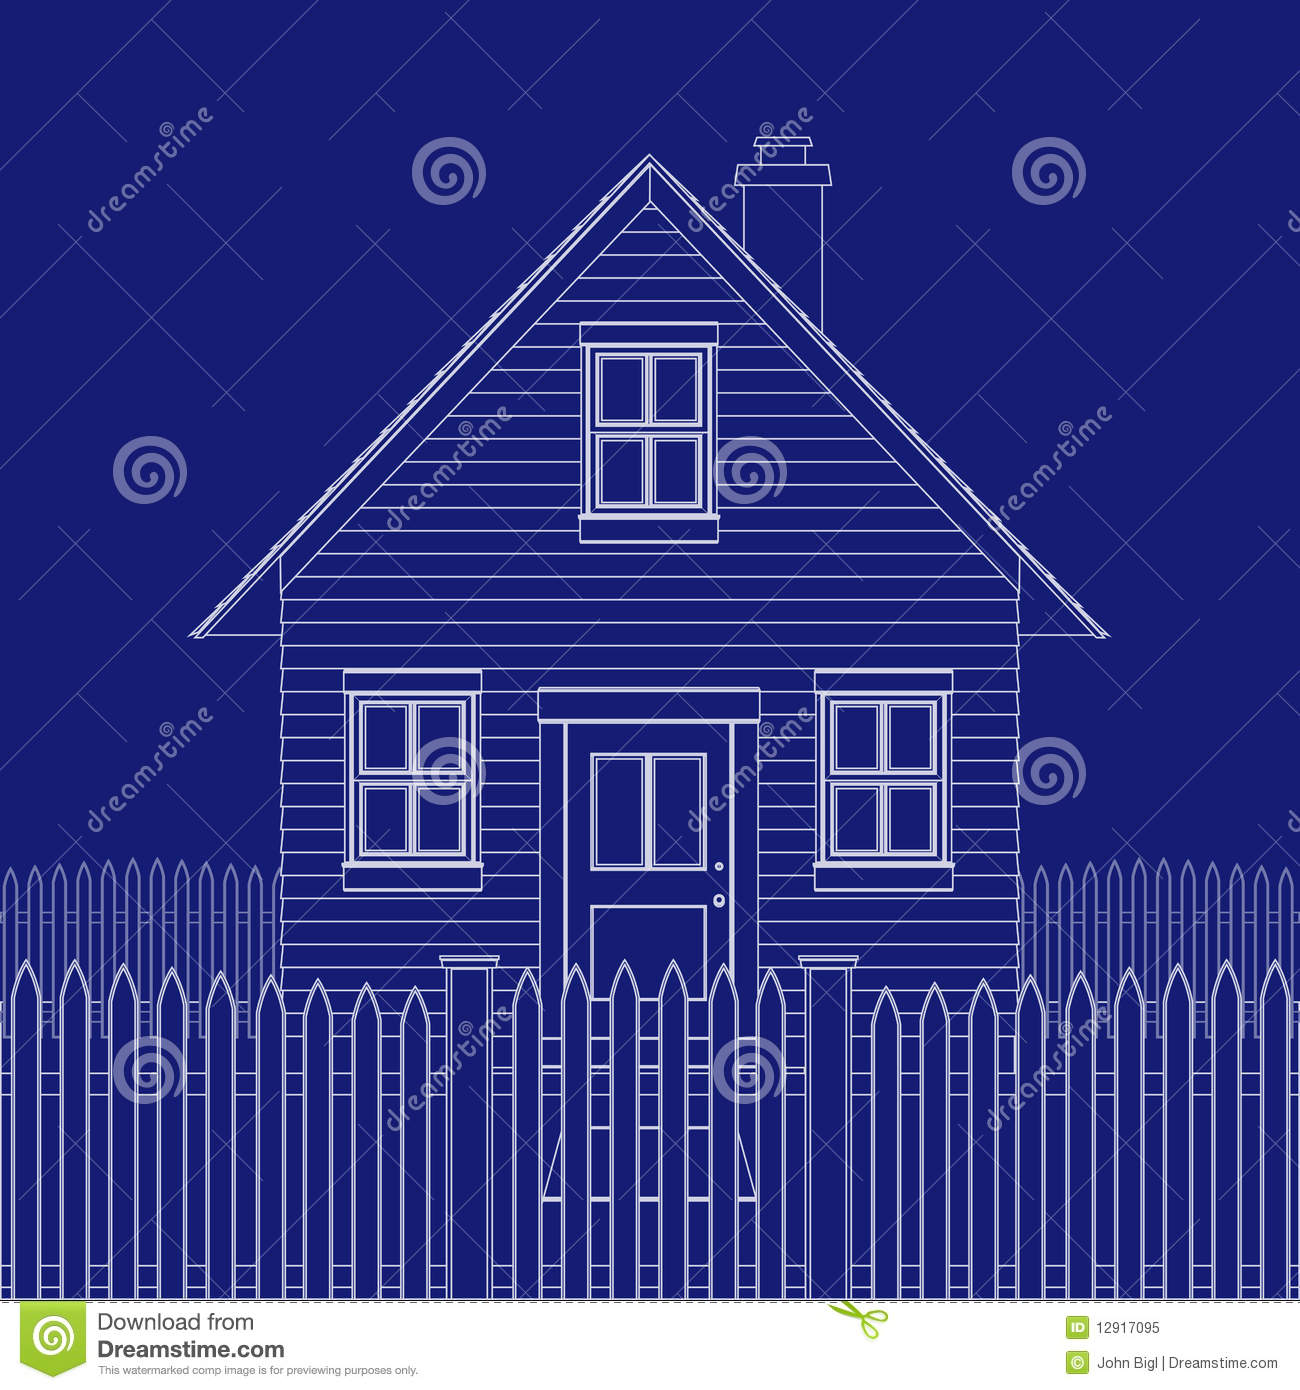 House Blue Print Royalty Free Stock Photo Image 12917095